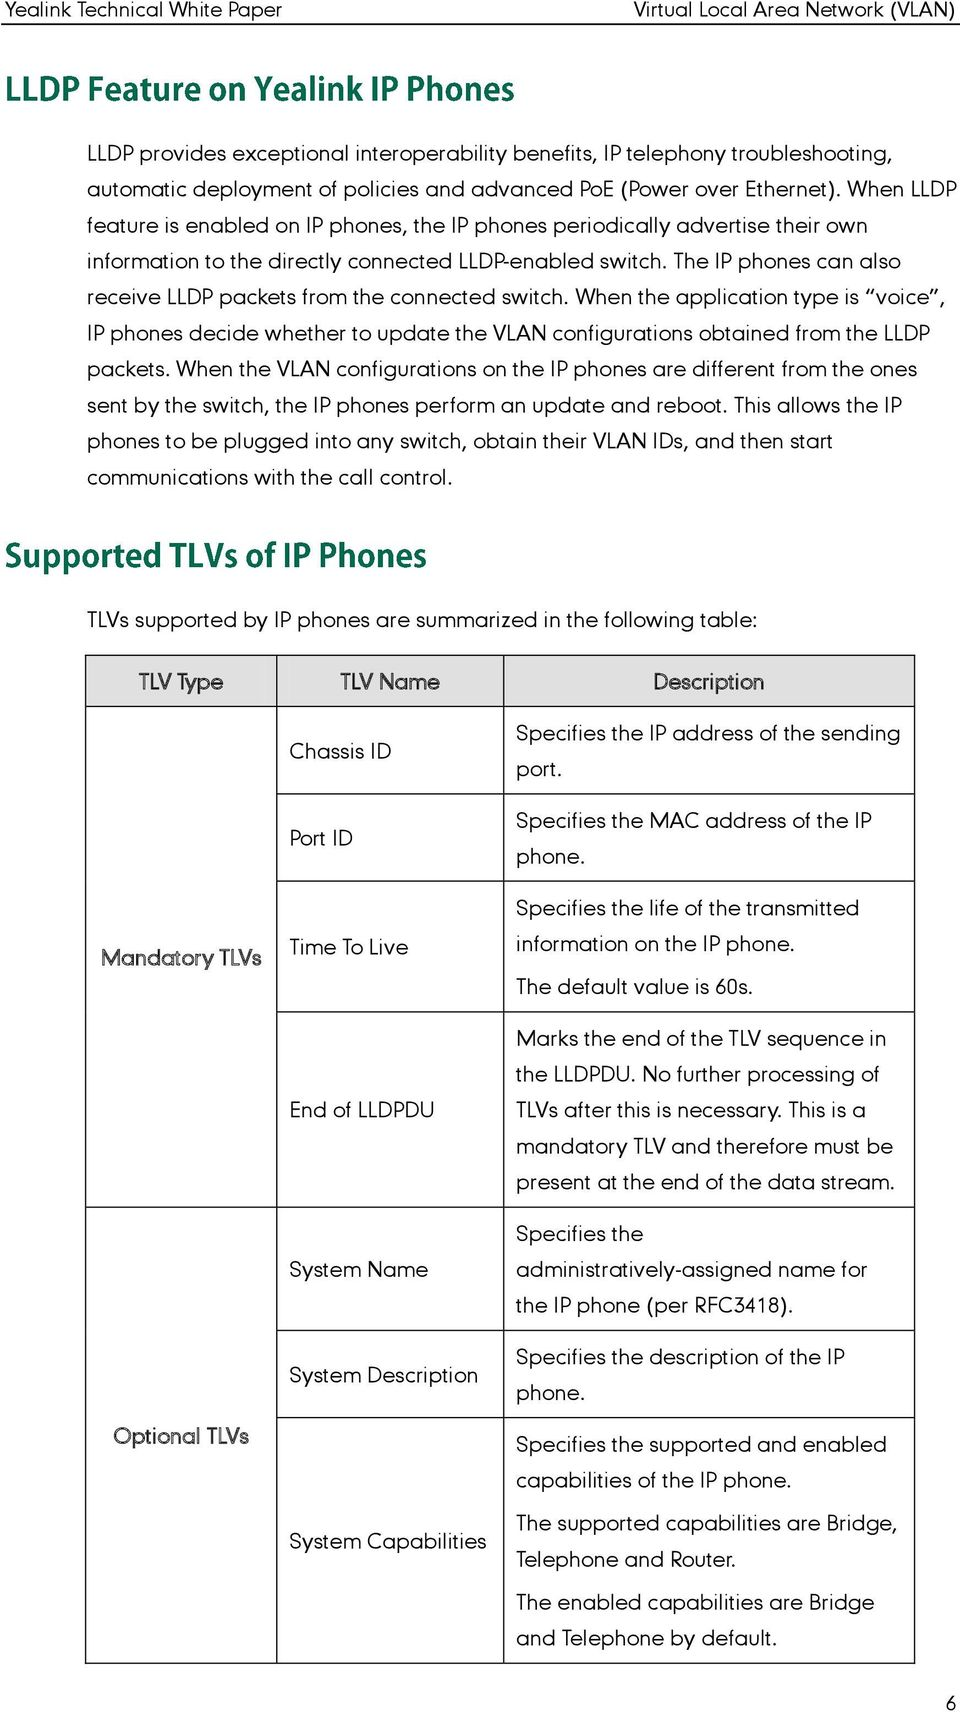 The IP phones can also receive LLDP packets from the connected switch. When the application type is voice, IP phones decide whether to update the VLAN configurations obtained from the LLDP packets.